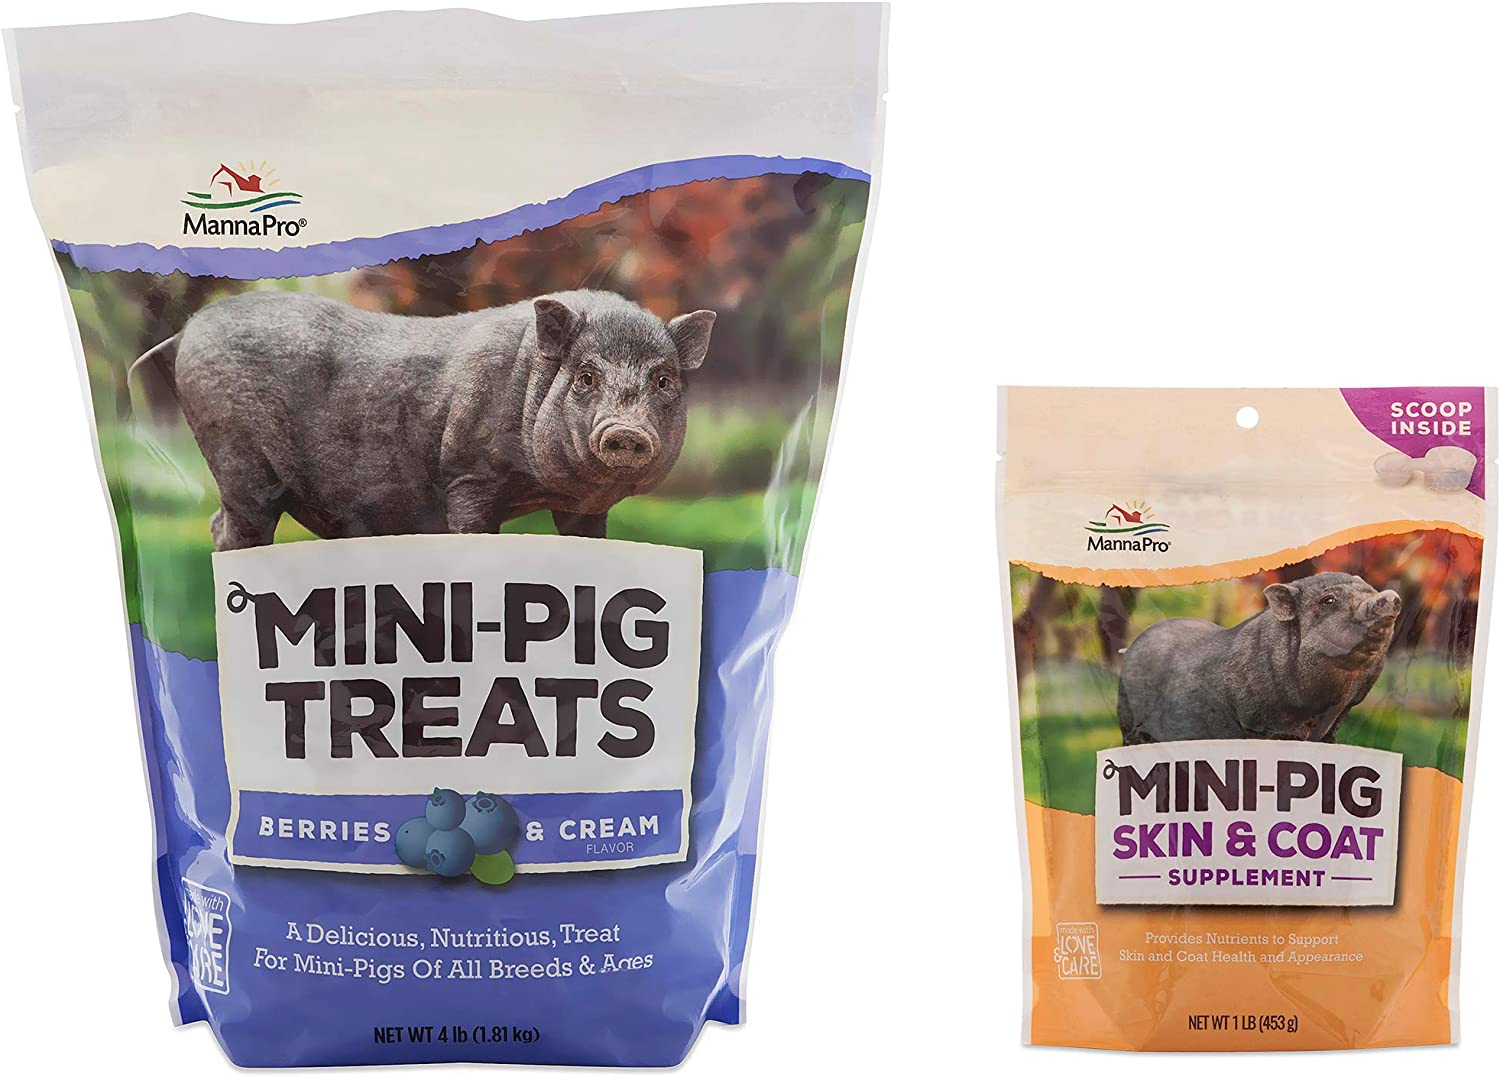 Manna Pro Mini Pig Treat, 4 Pounds and Supplement, 1 Pound Variety Pack of 2